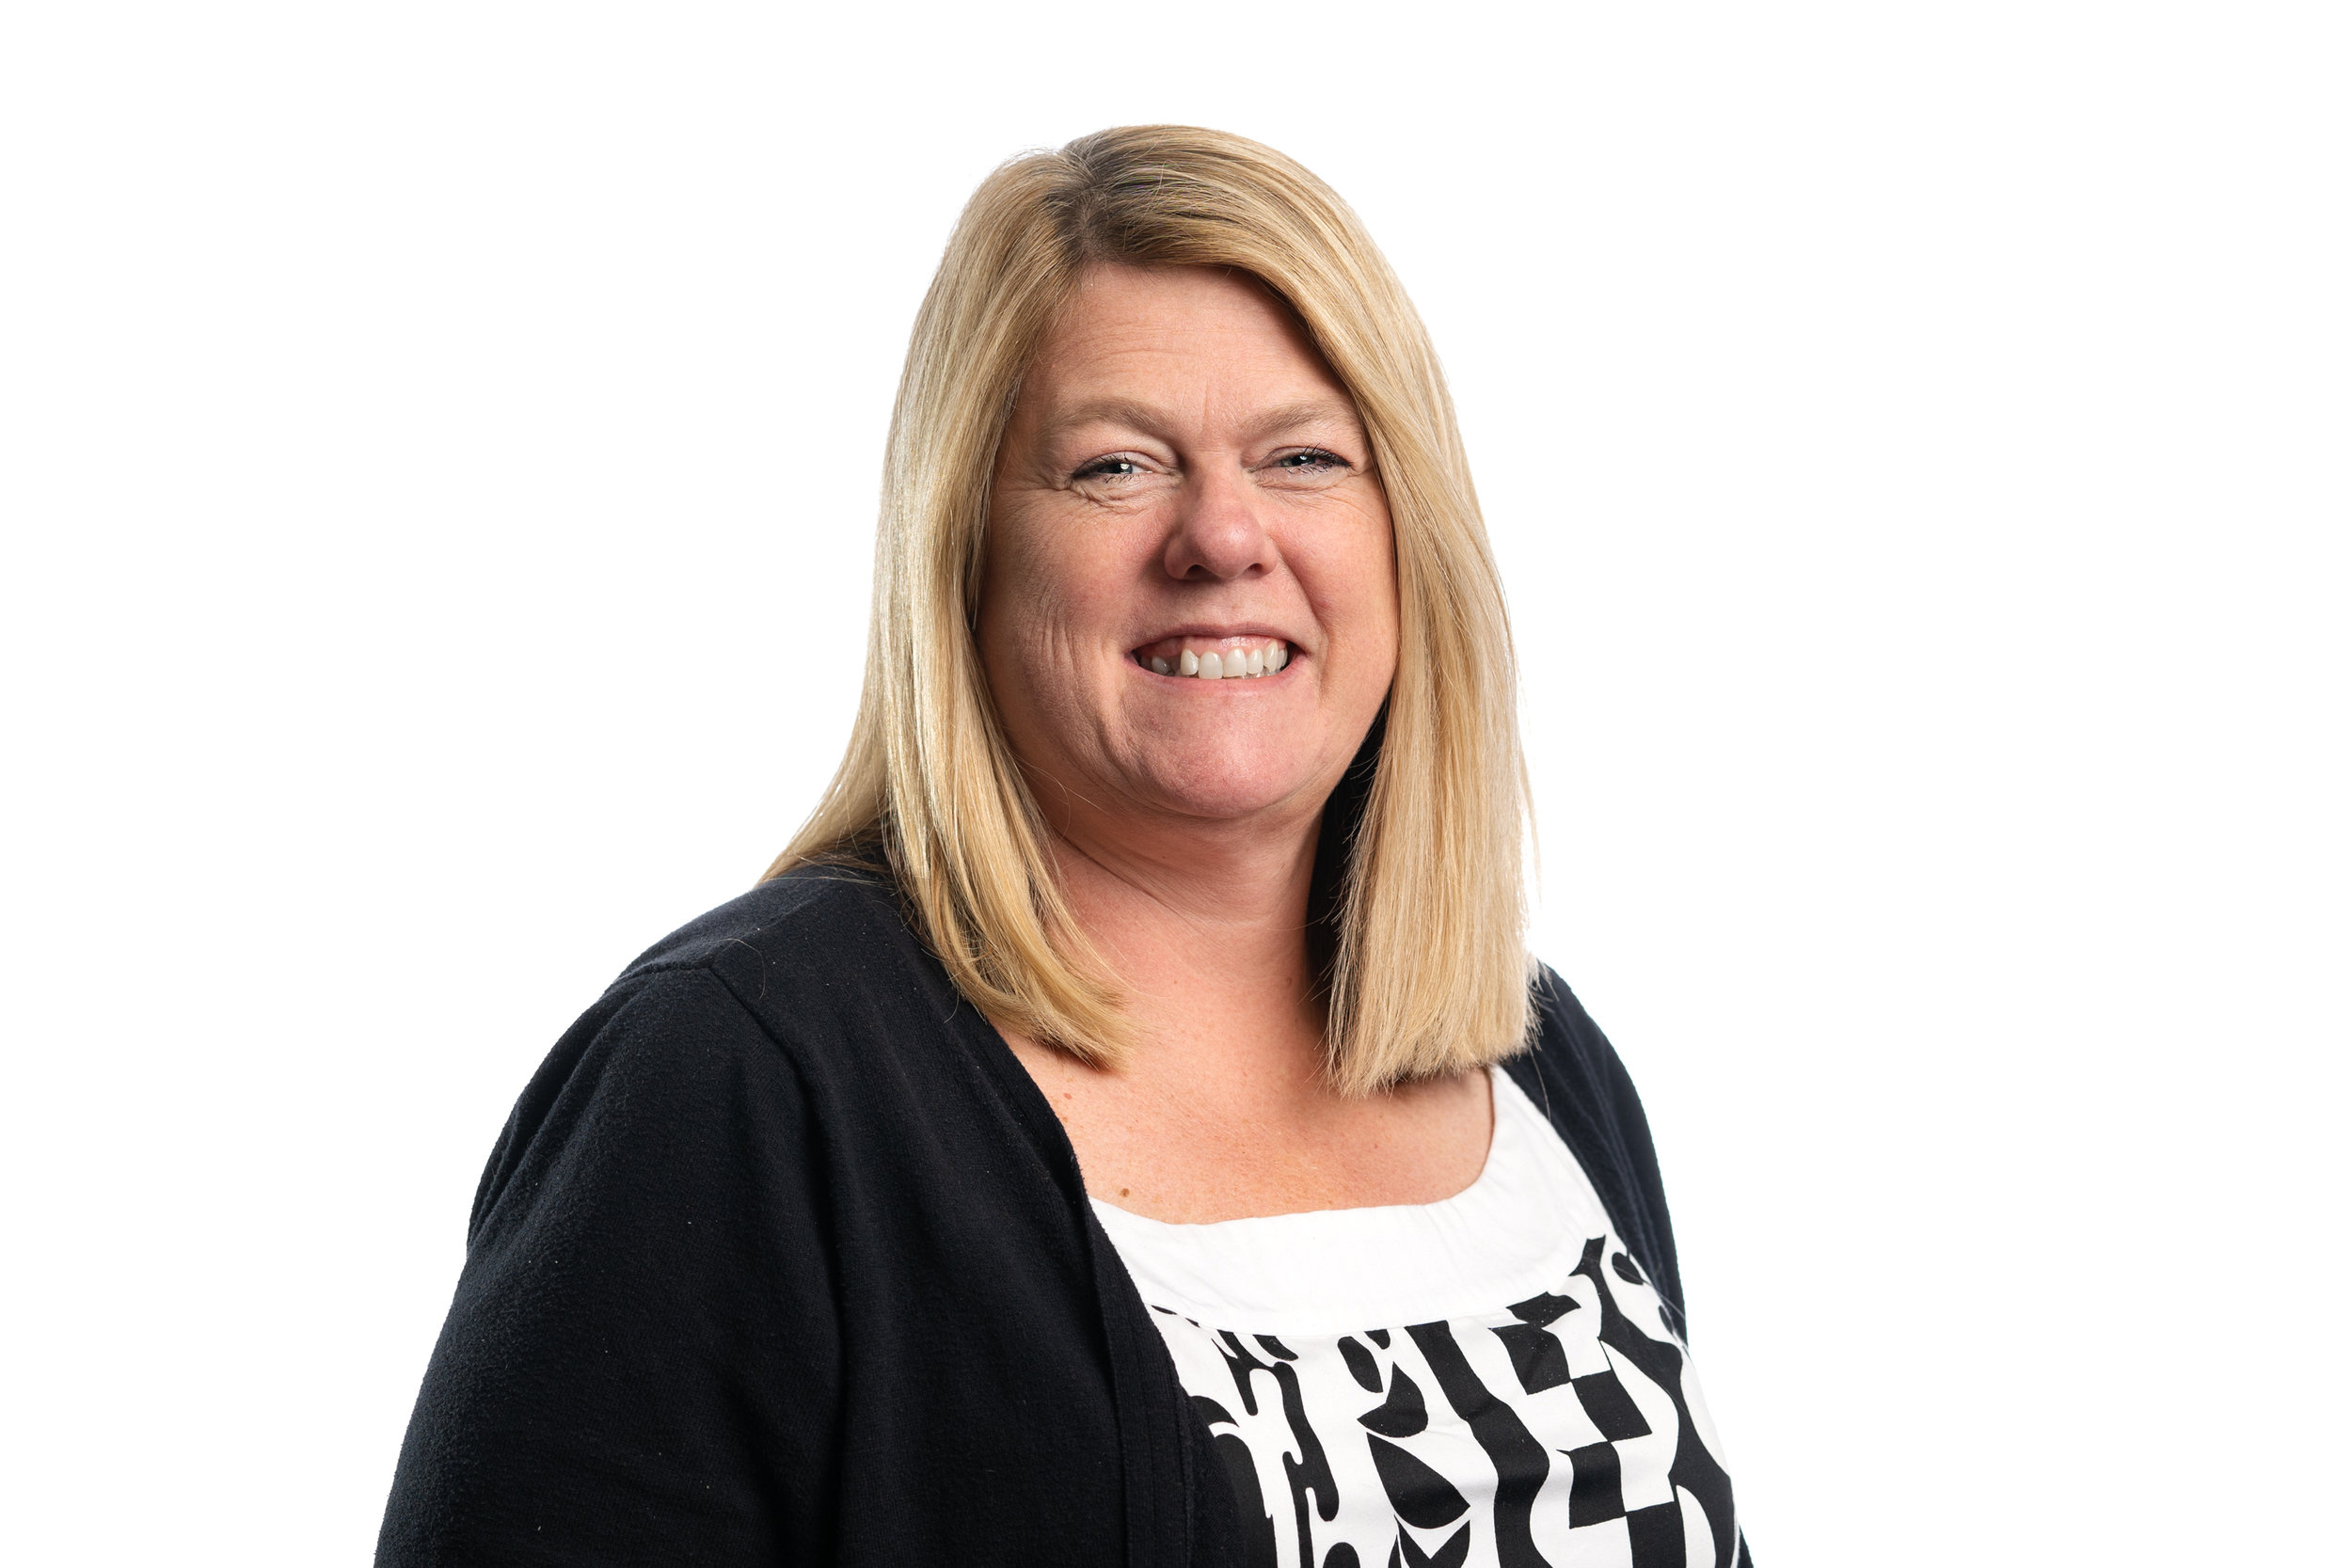 Beth Dee - Accounts Manager